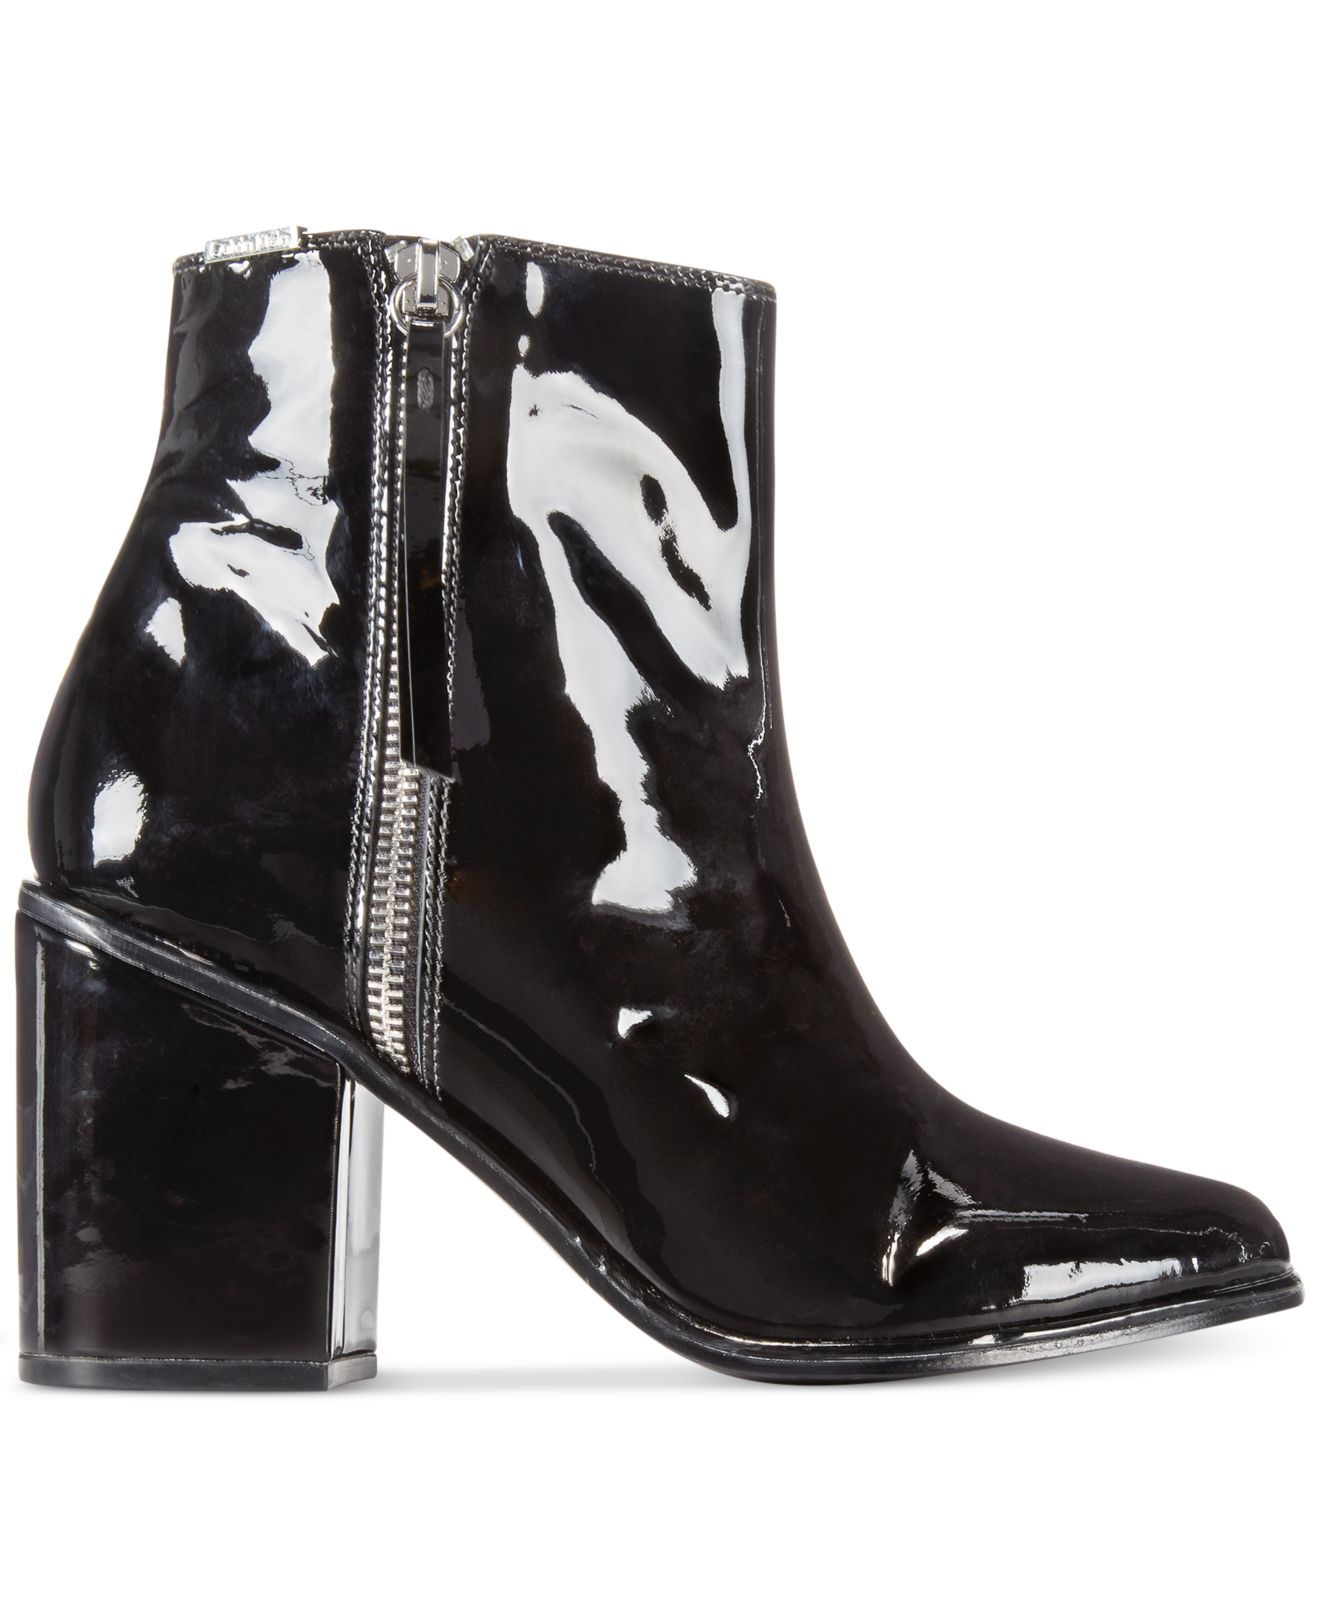 8370fc65d05d Calvin Klein Black Leather Ankle Boots - Best Picture Of Boot ...